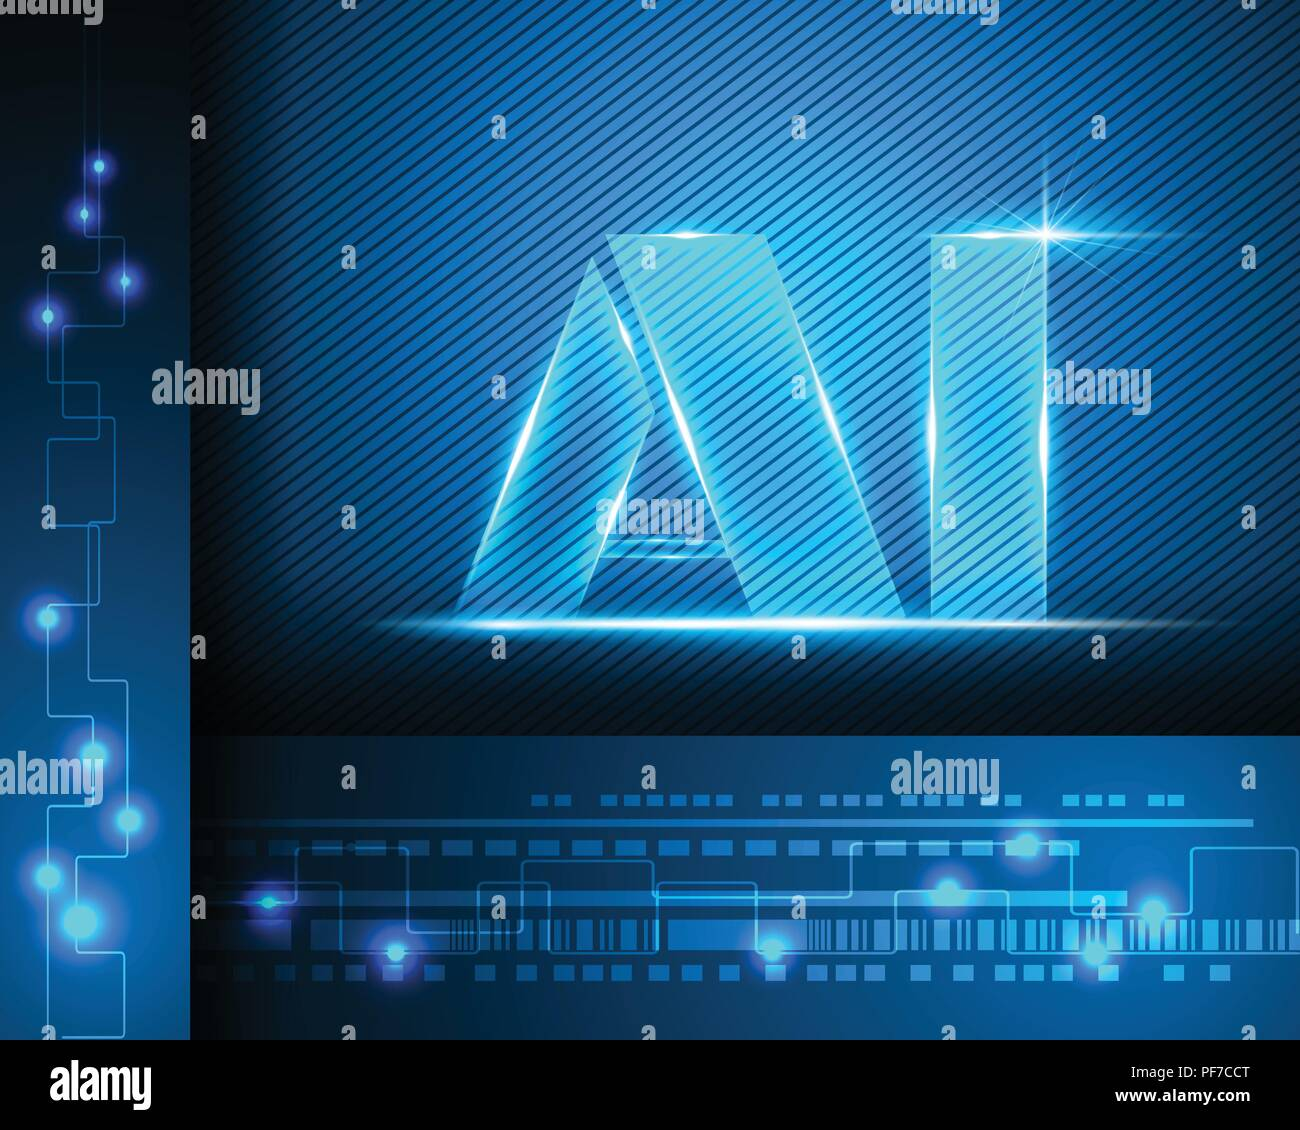 AI Letter Digital Artificial intelligence and big data Machine Learning business system concept.Vector illustration EPS10 - Stock Image